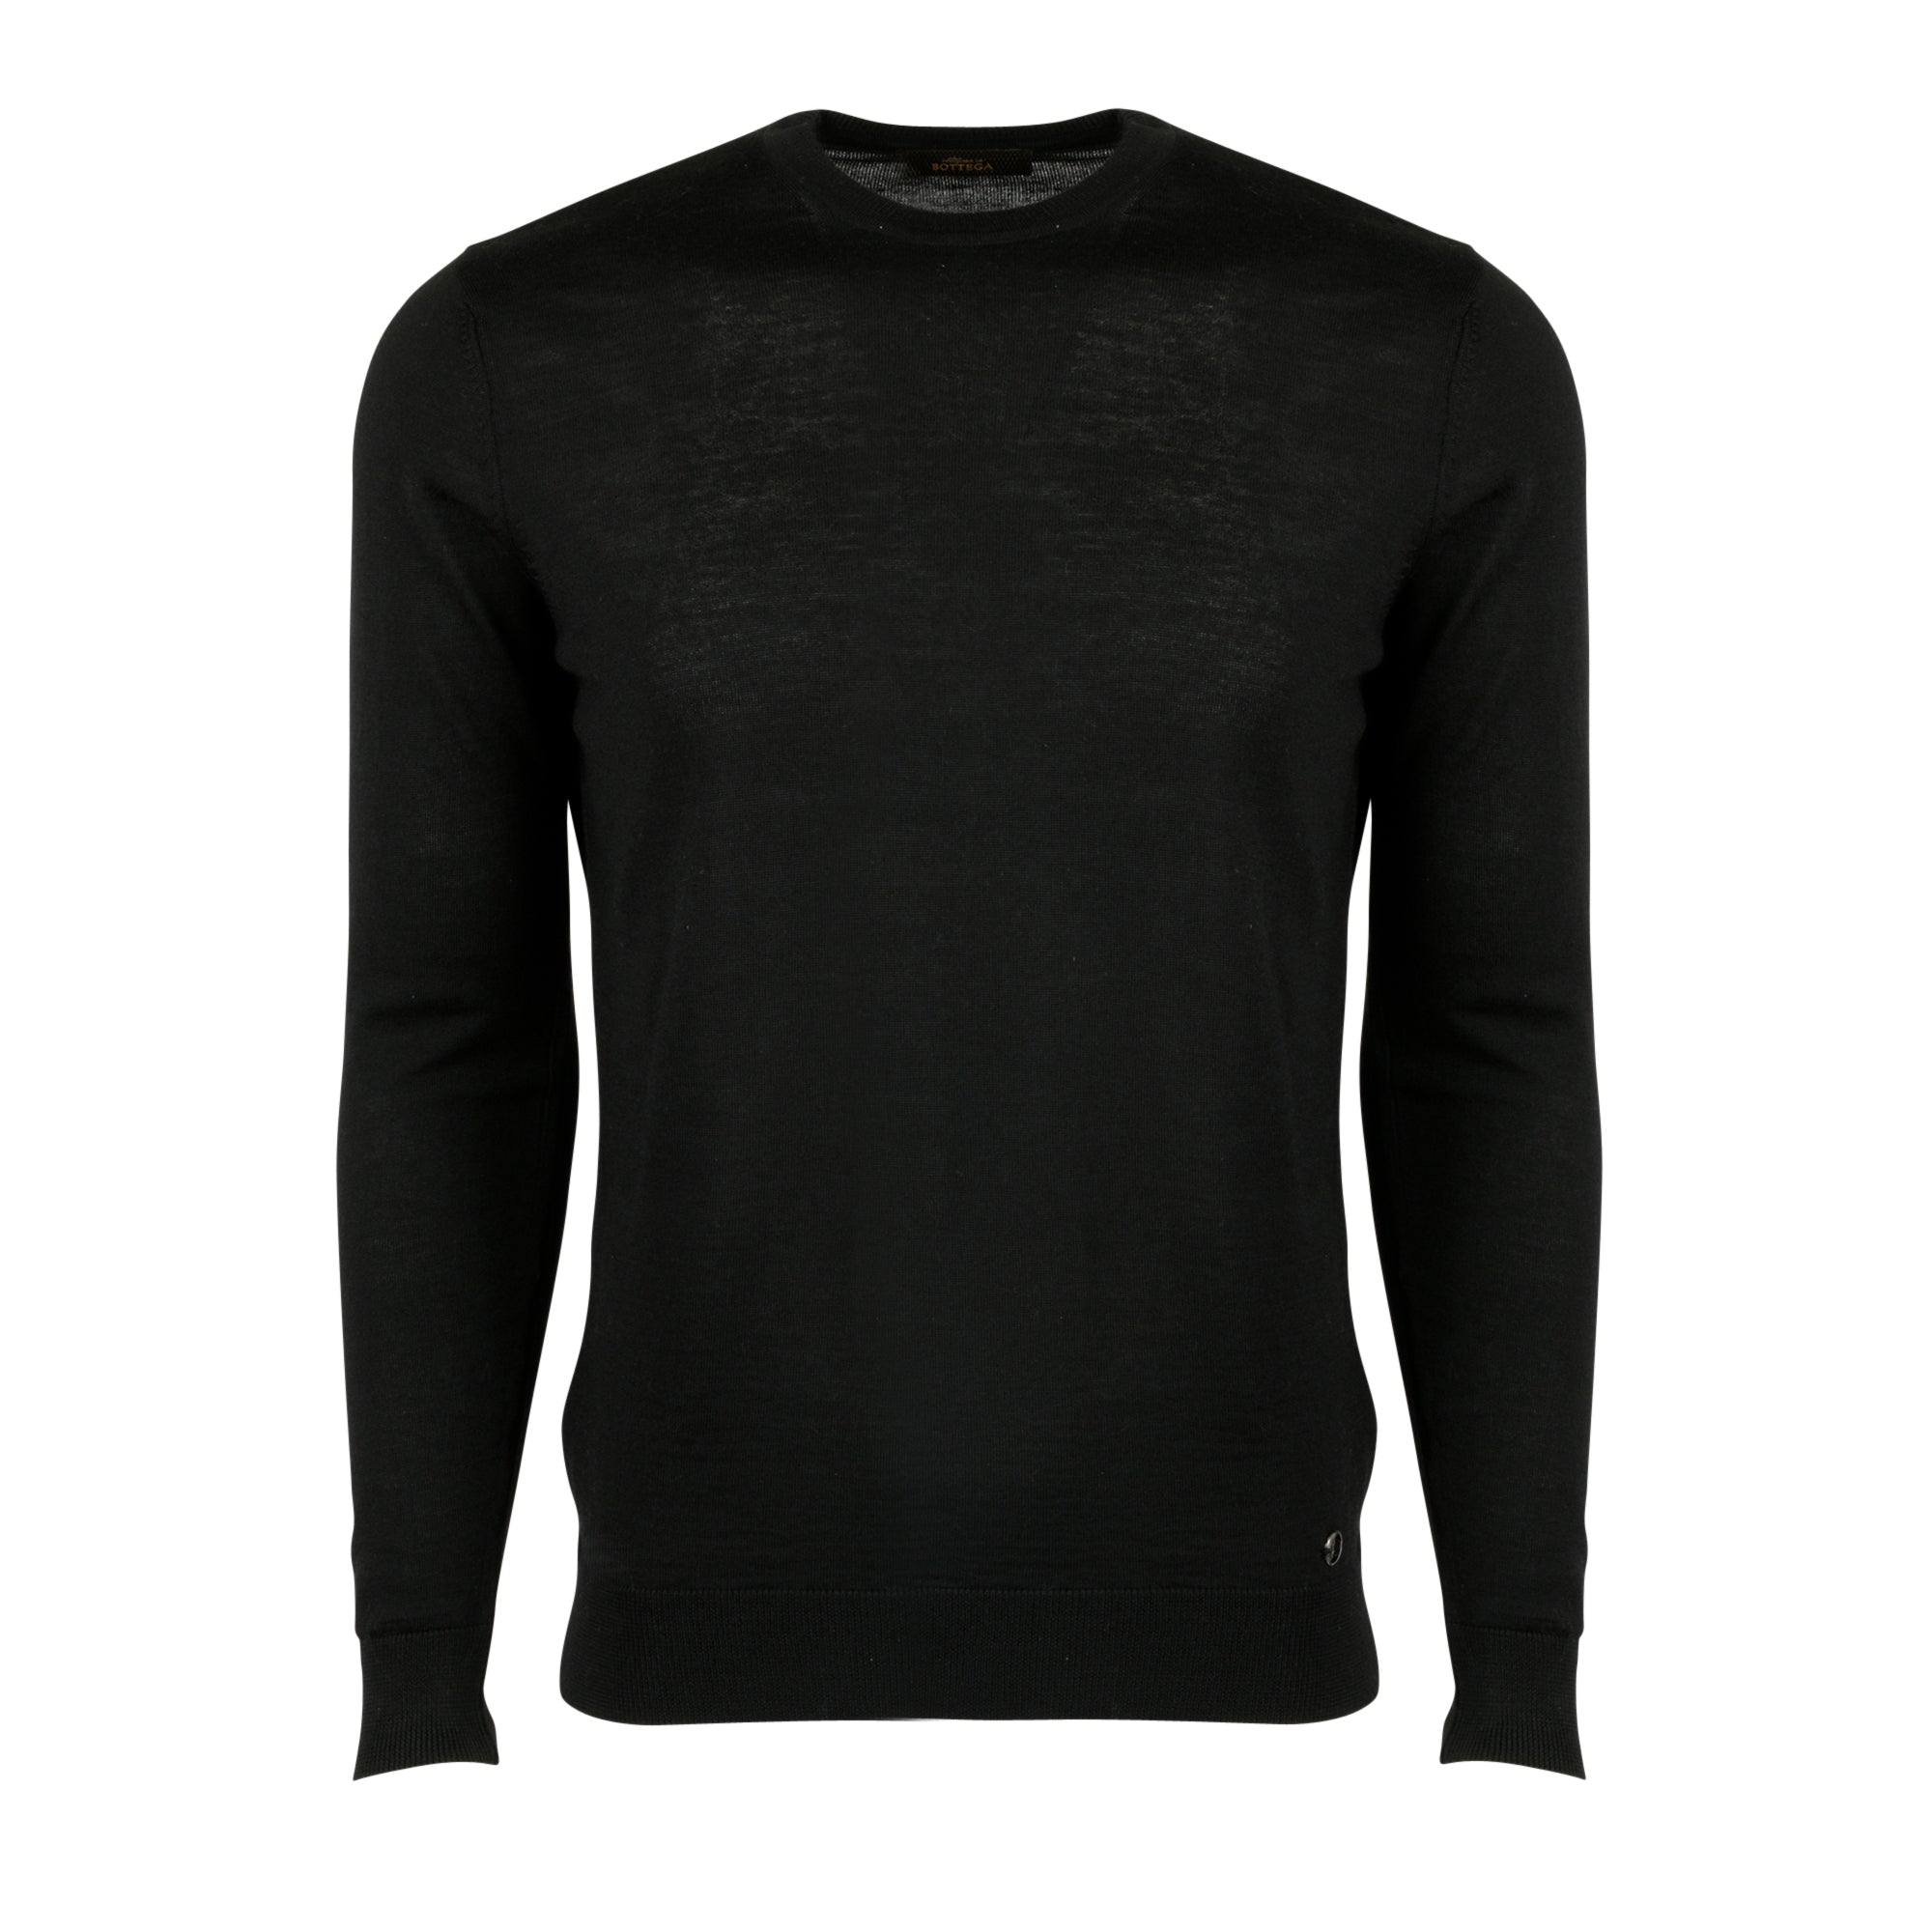 Ace Crewneck Sweater in Black